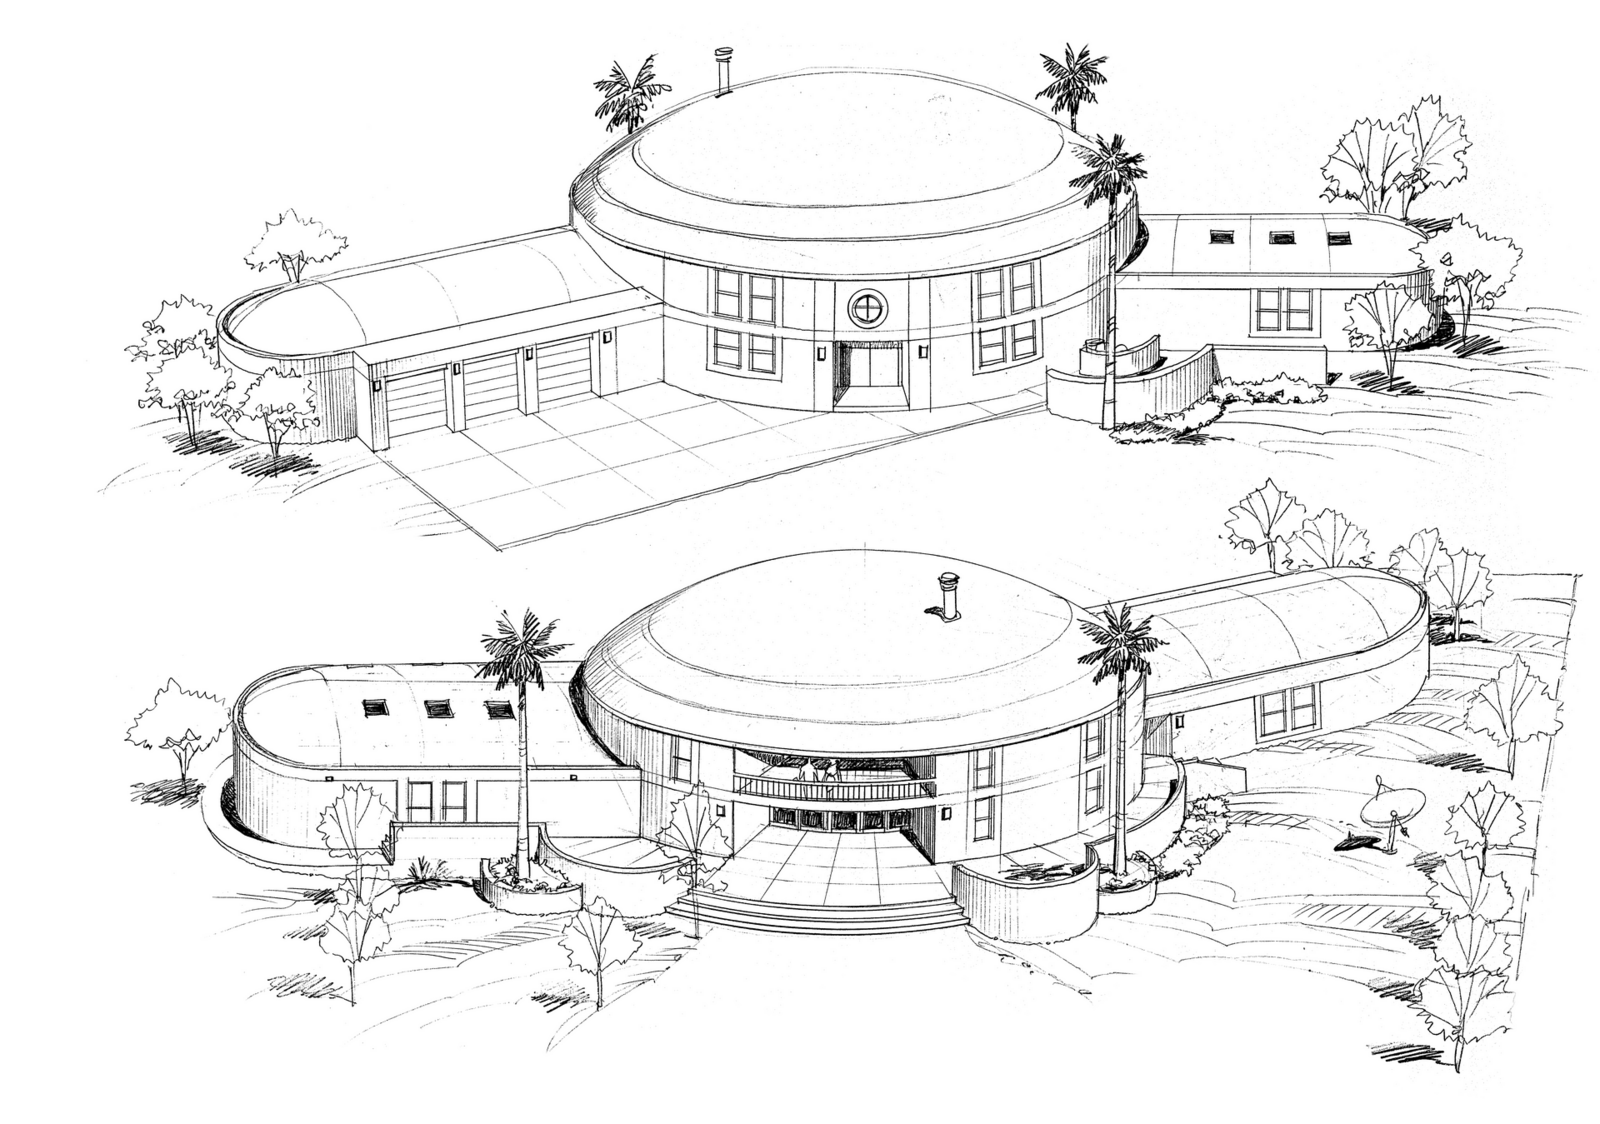 Front and rear elevations of proposed Monolithic Dome home.